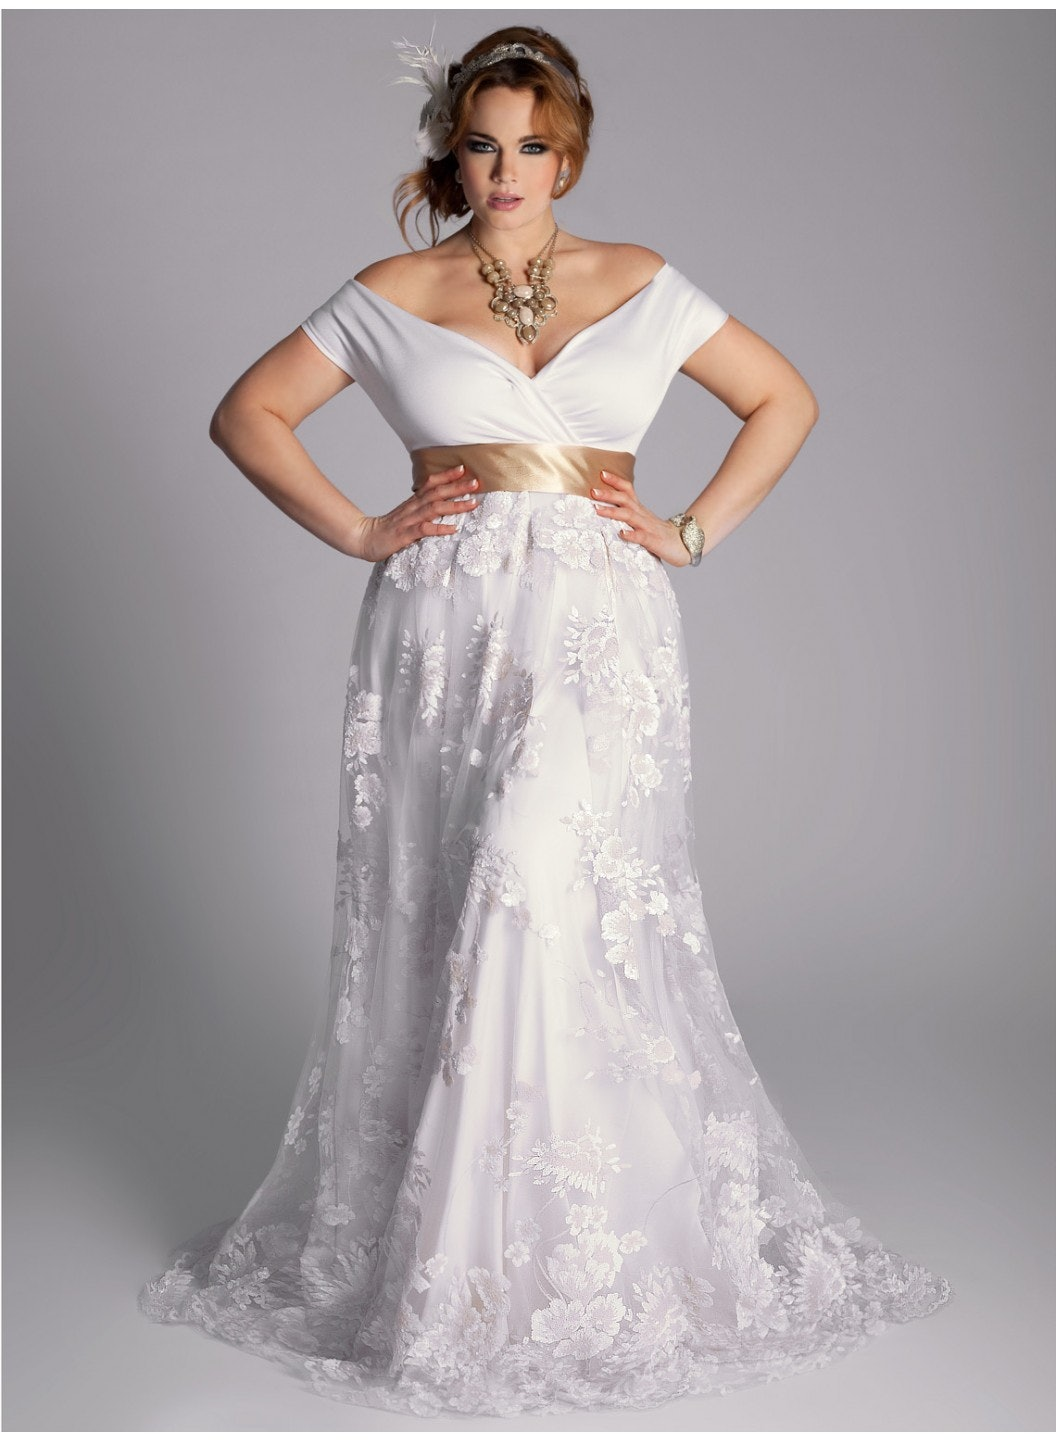 25 stunning plus size wedding dresses for every style of nuptial 25 stunning plus size wedding dresses for every style of nuptial affair ombrellifo Image collections